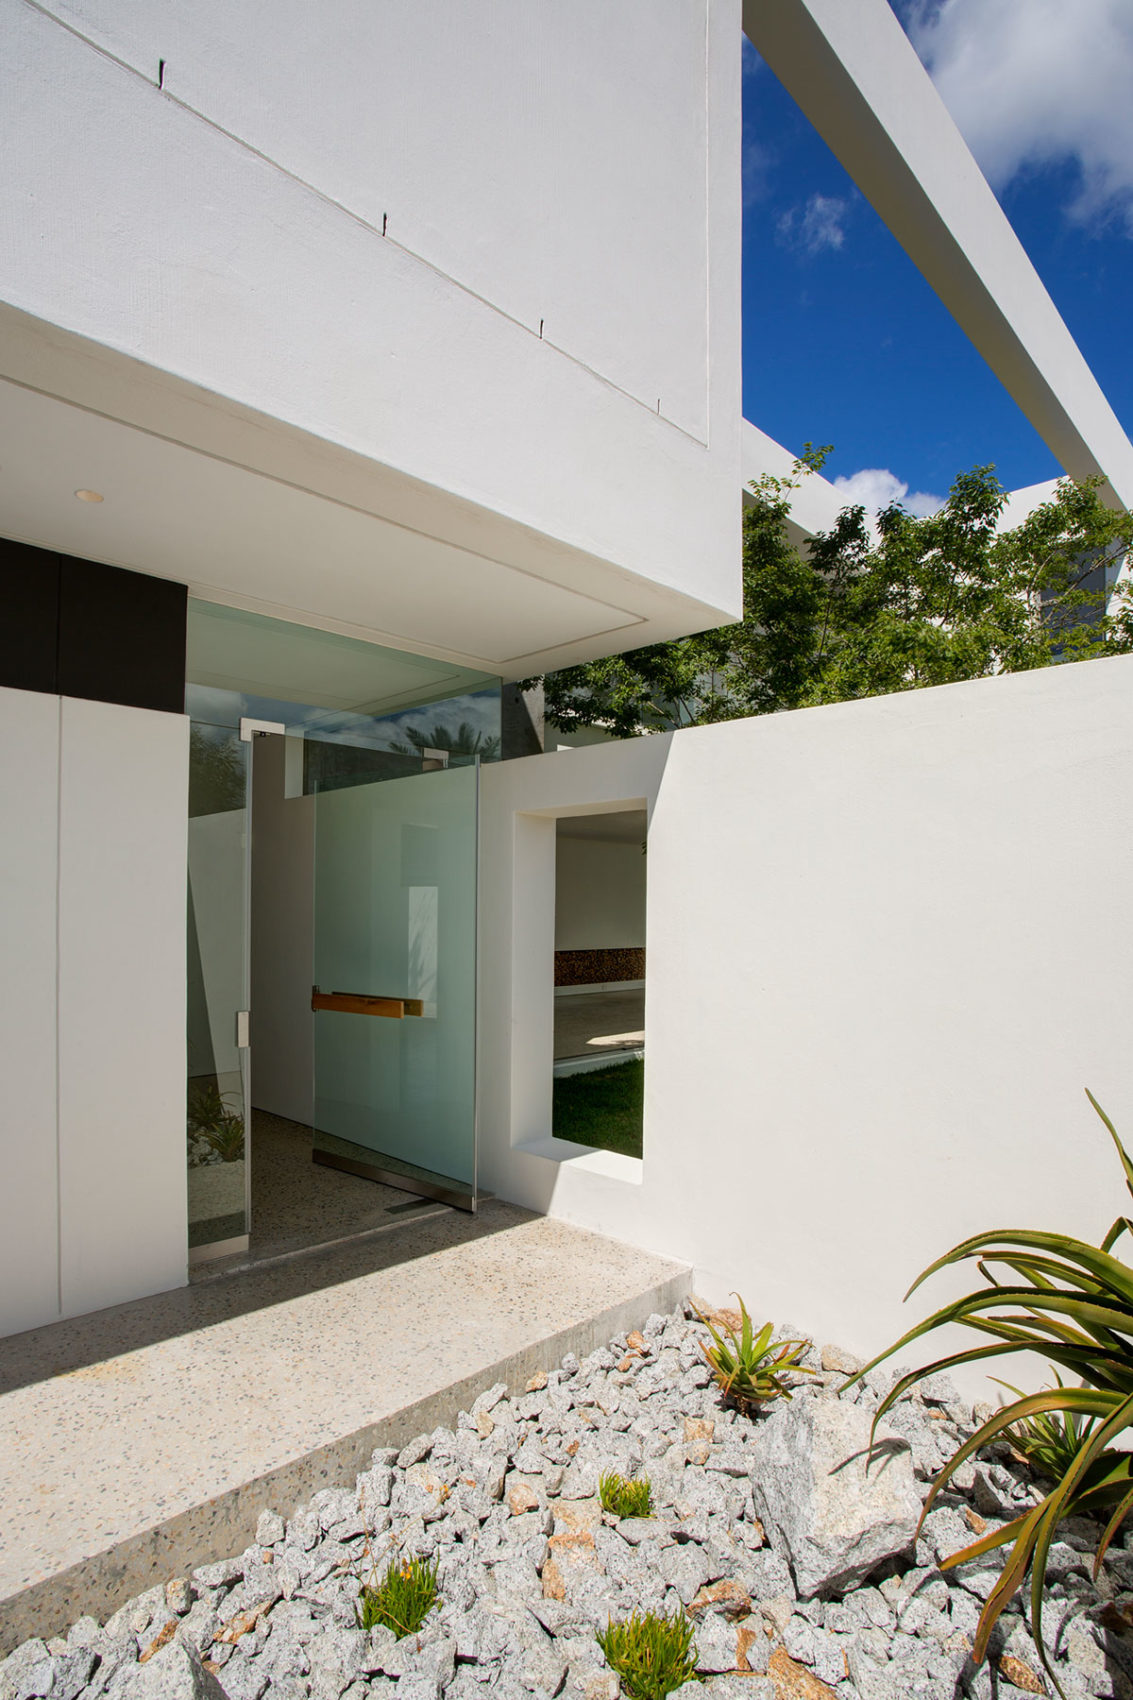 Firth 114802 by Three14 Architects (1)